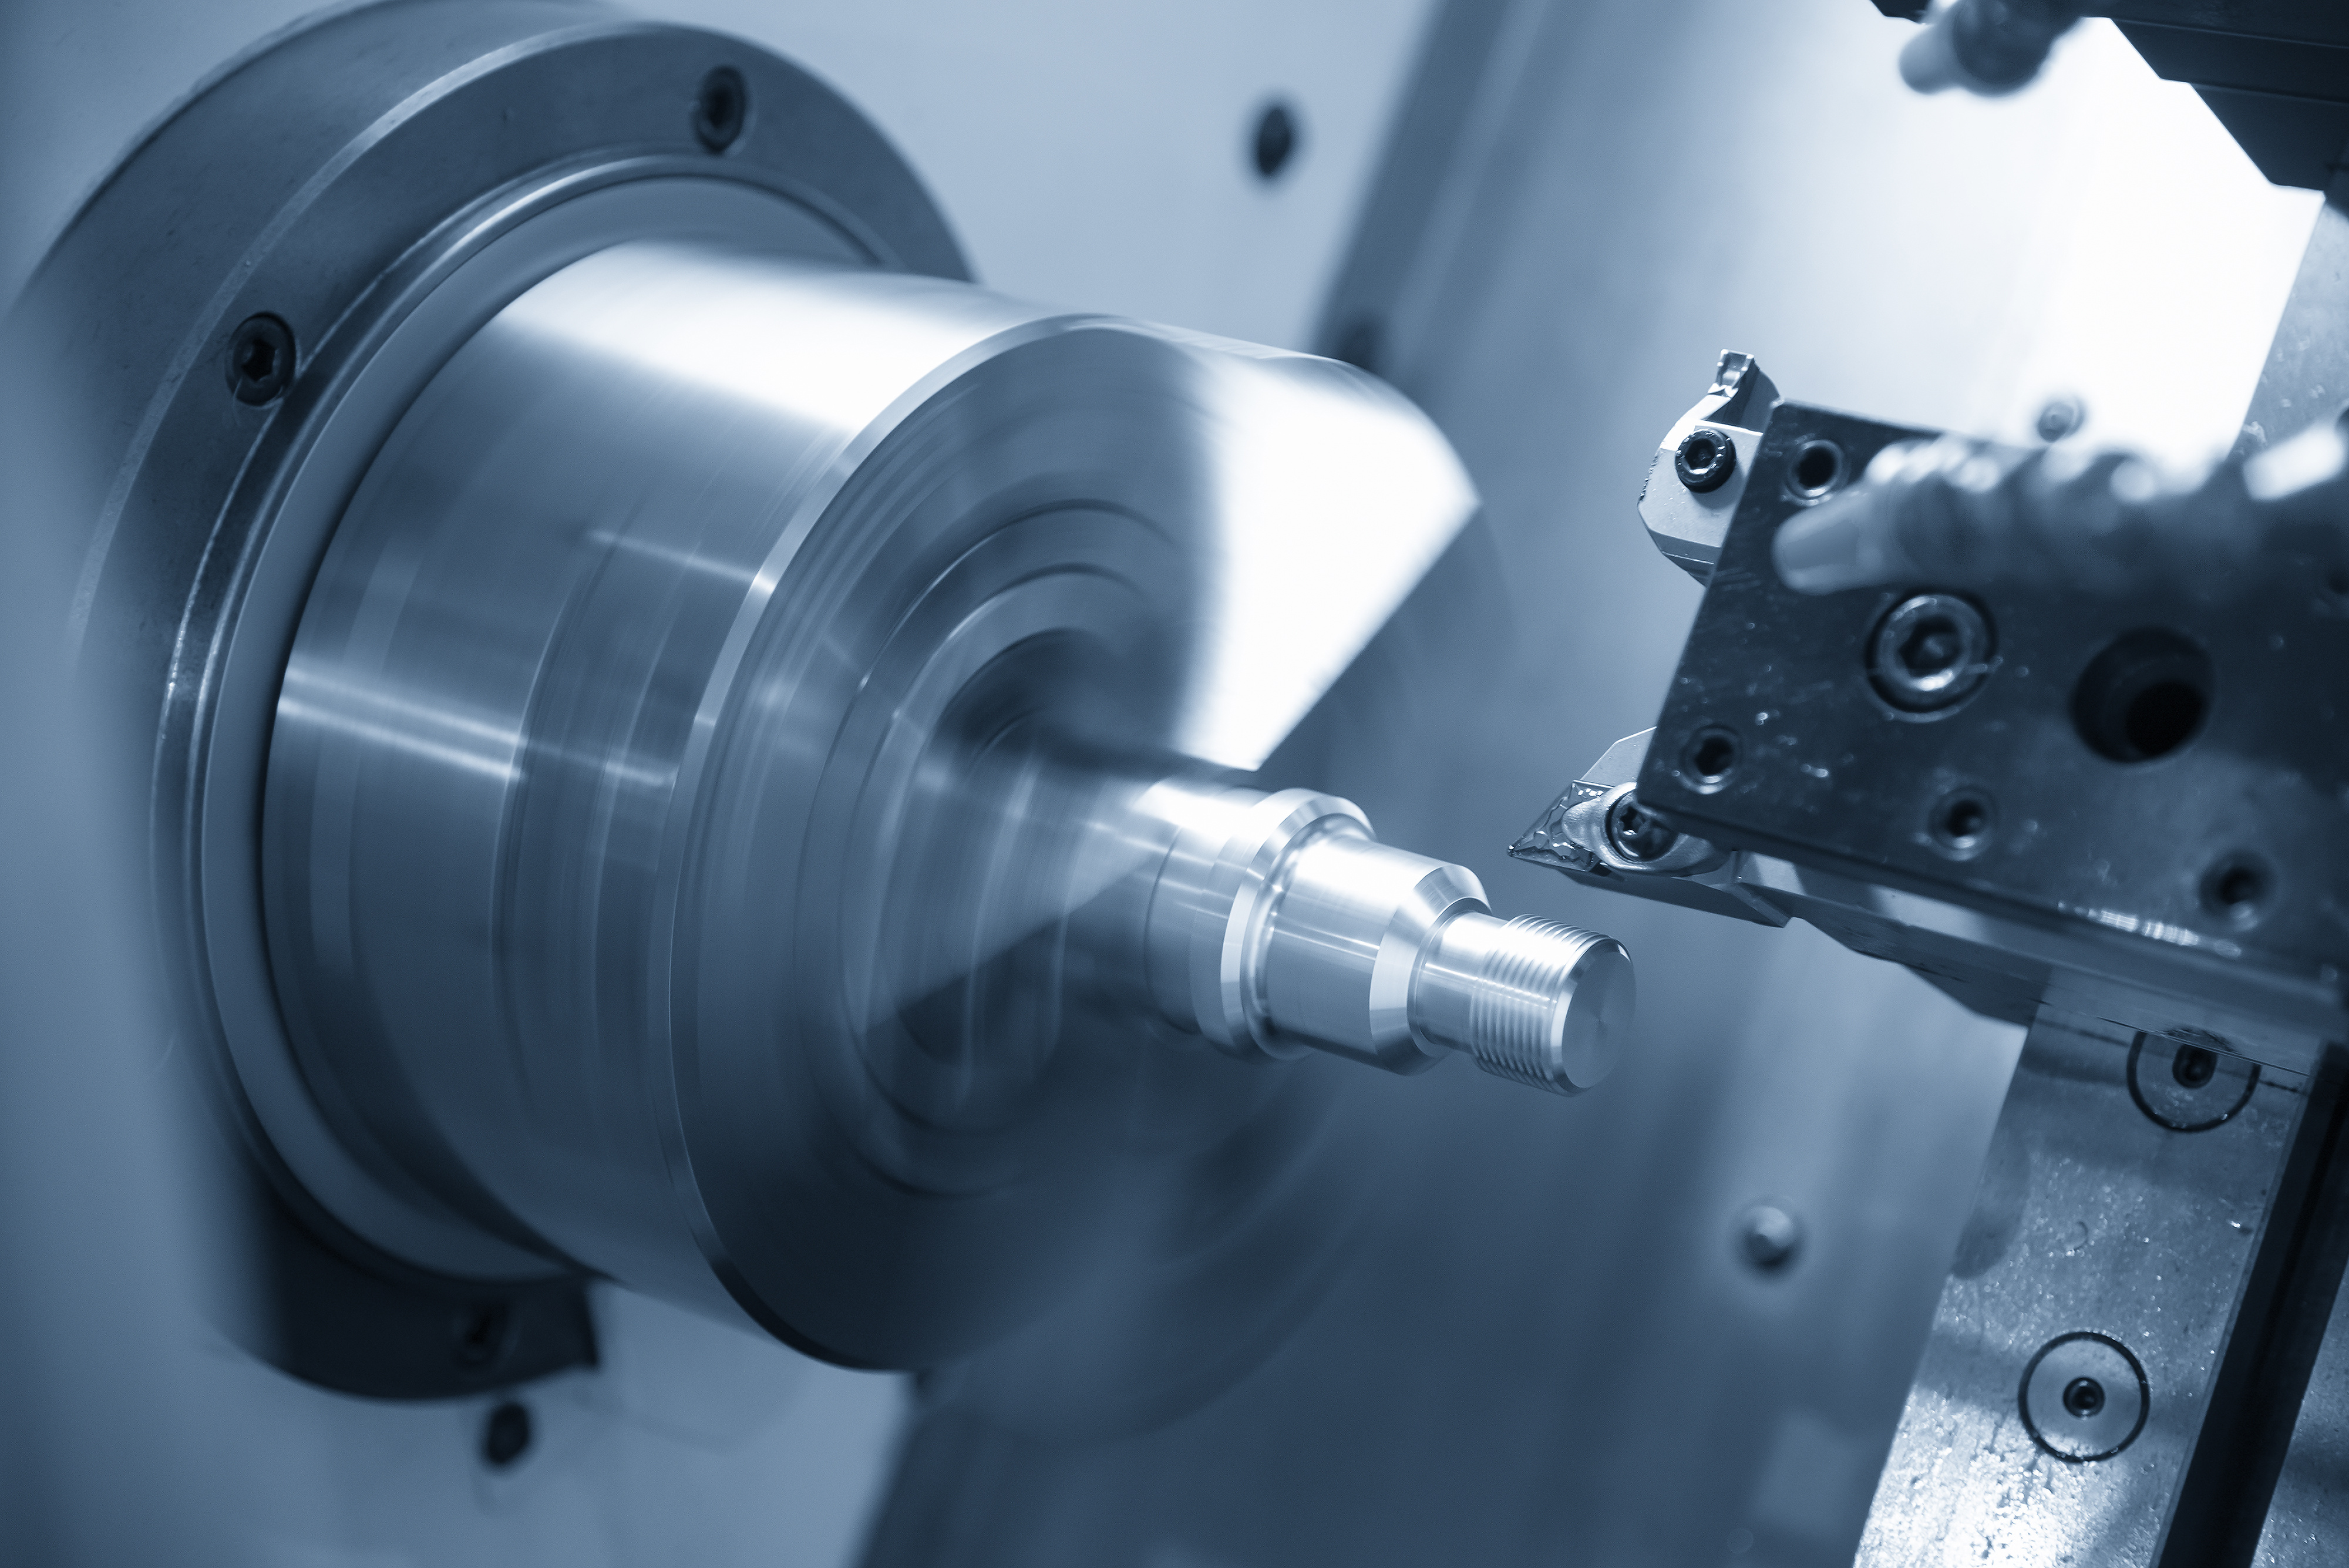 The  CNC lathe machine or turning machine  cutting the thread at the steel shaft.The threading process on the CNC lathe machine .